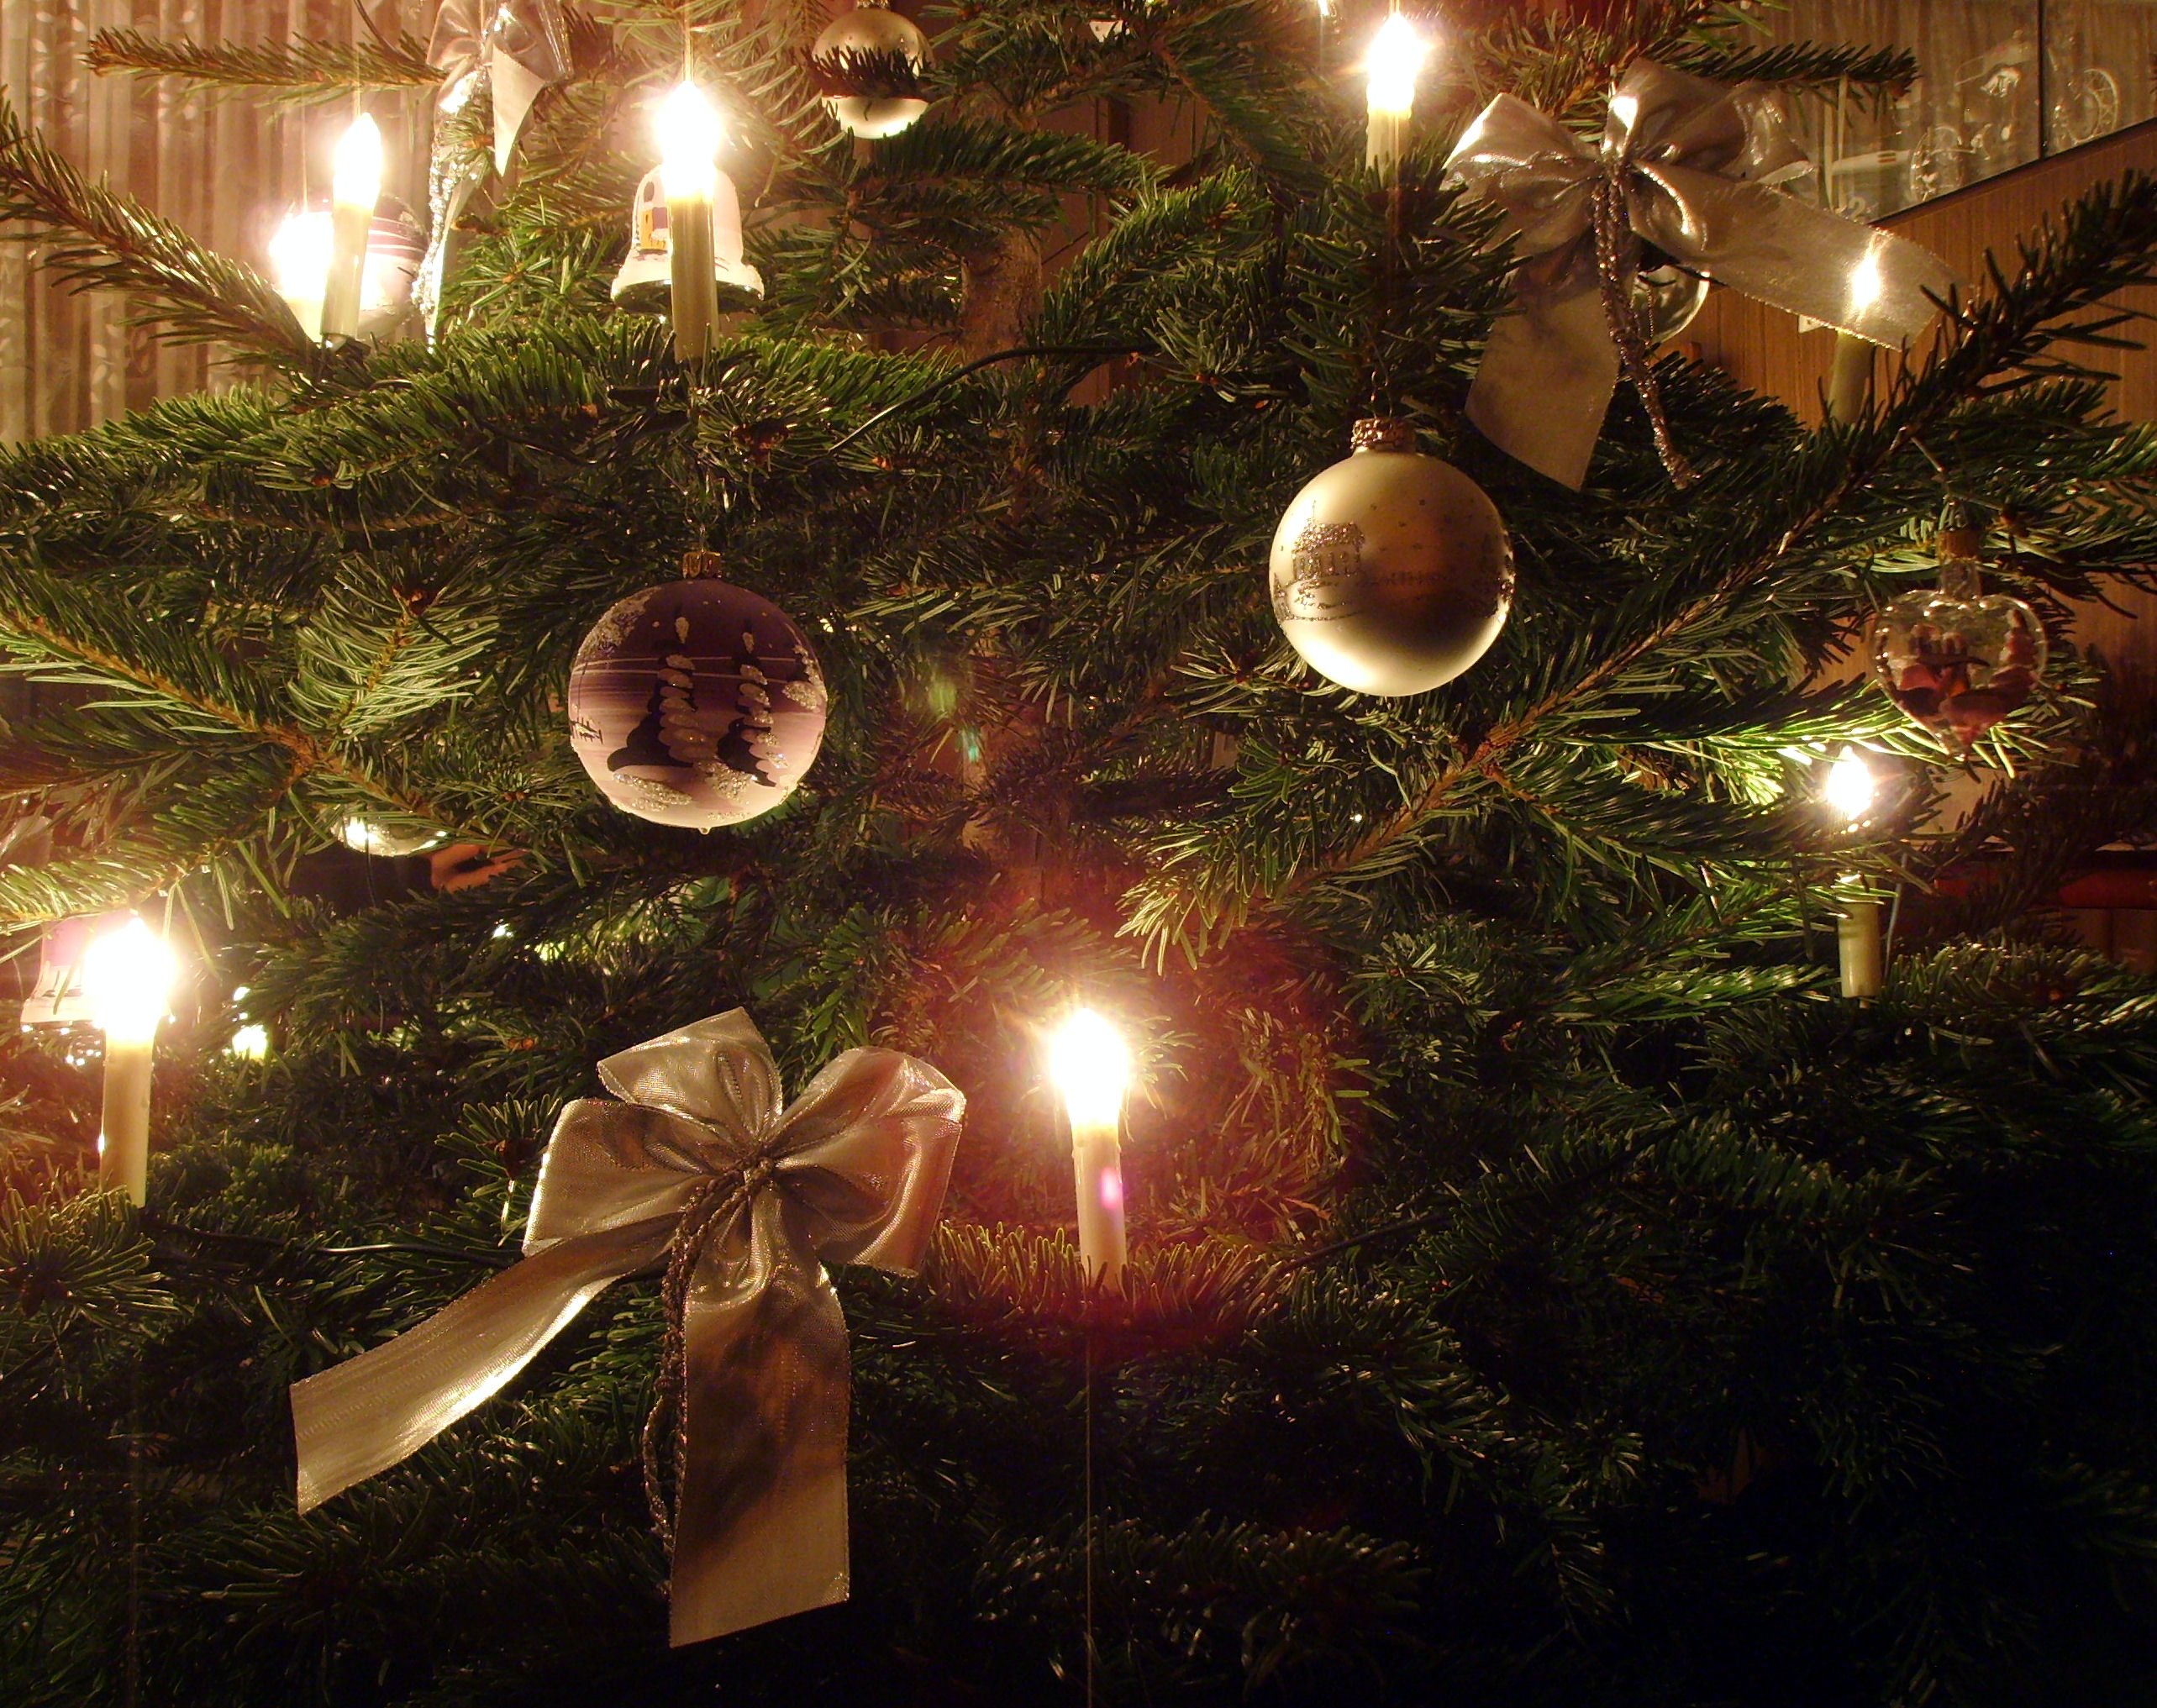 File:Candle on Christmas tree 6.jpg - Wikimedia Commons